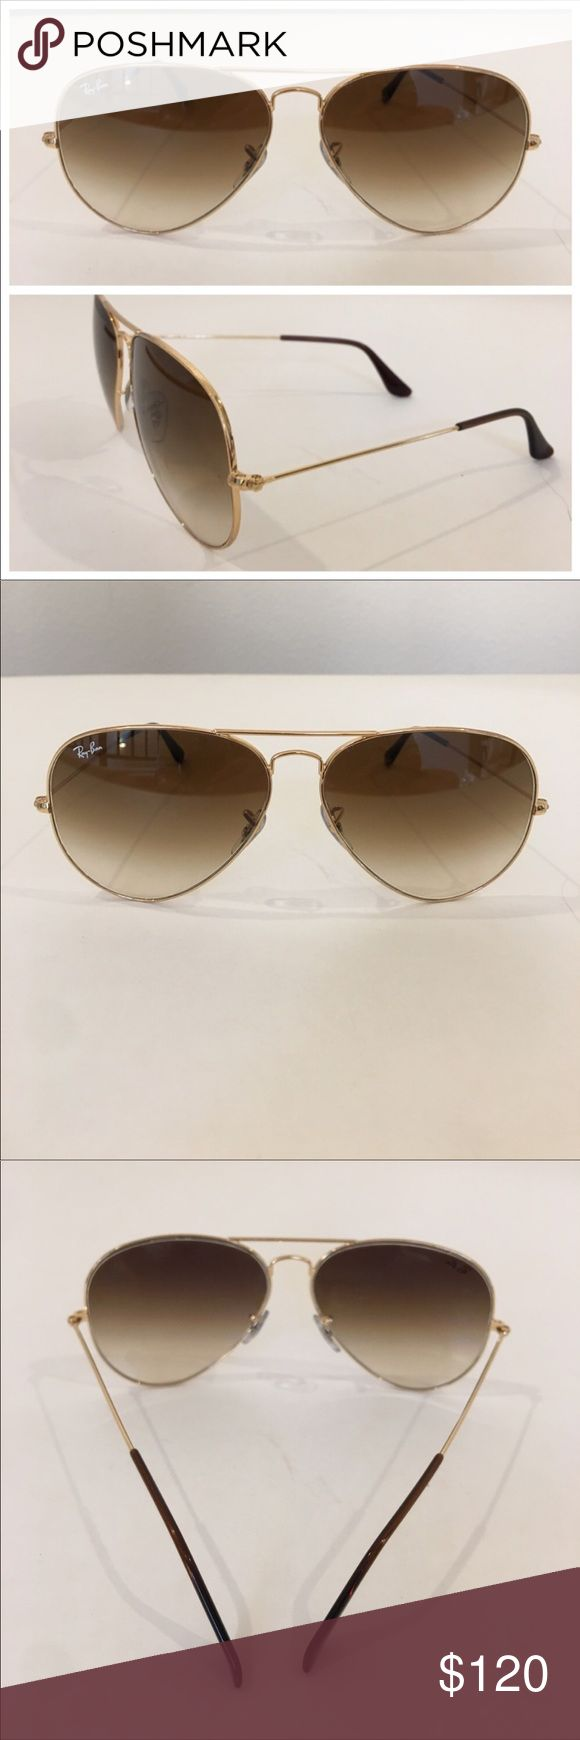 Authentic RAY BAN large frame aviator sunglasses Authentic RAY BAN metal gold tone large aviator sunglasses, made in Italy, model RB 3025.  In gently worn preowned condition woth gentle scratches on the lens and frame. One eye pad is a slightly askew and